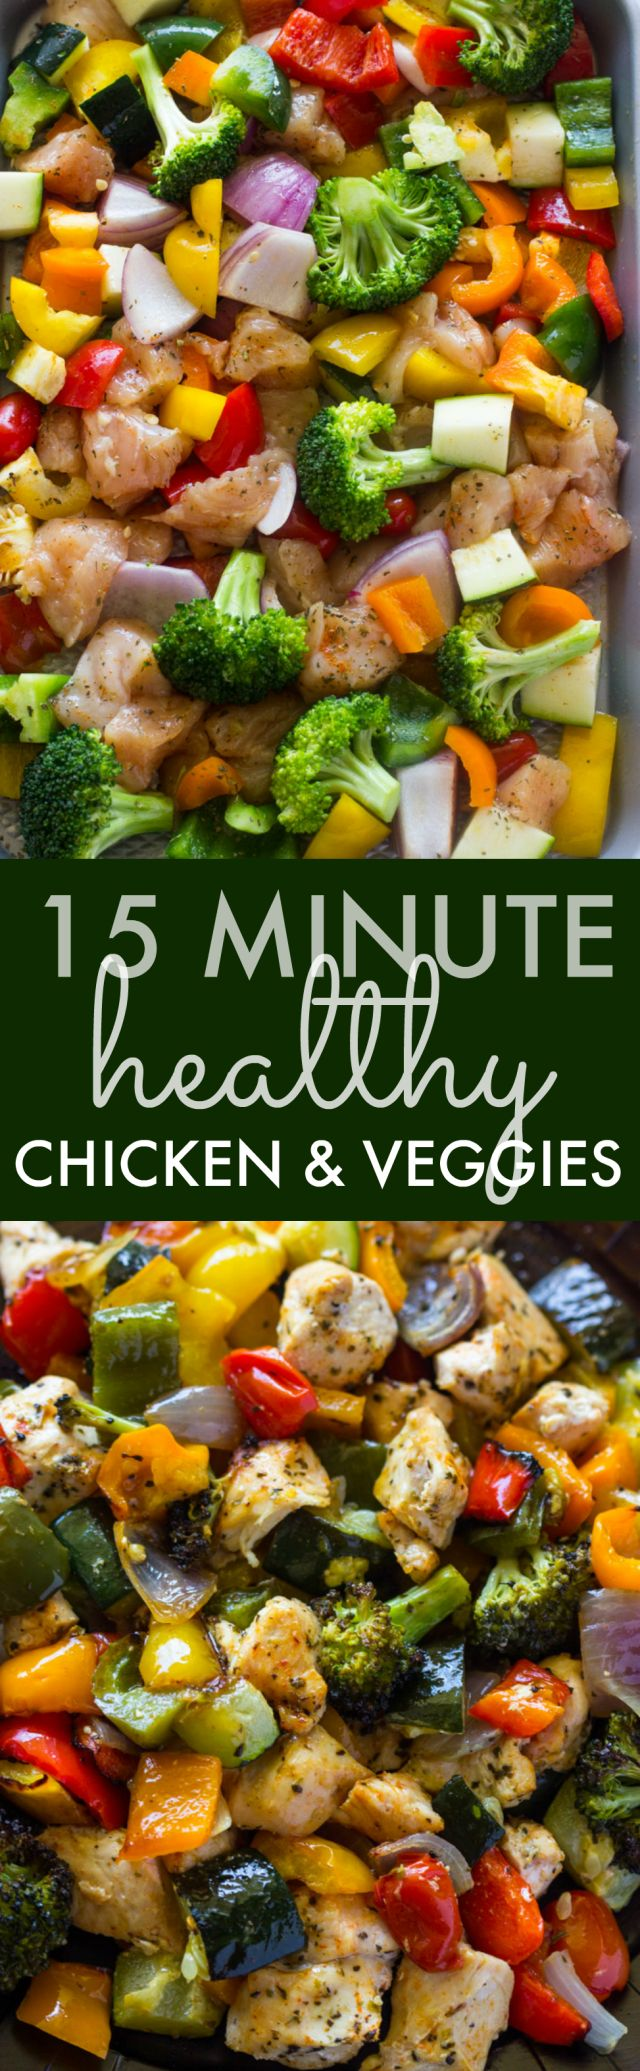 Healthy and flavorful. Oven roasted chicken breasts and rainbow veggies are tender & juicy and ready in 15 minutes.